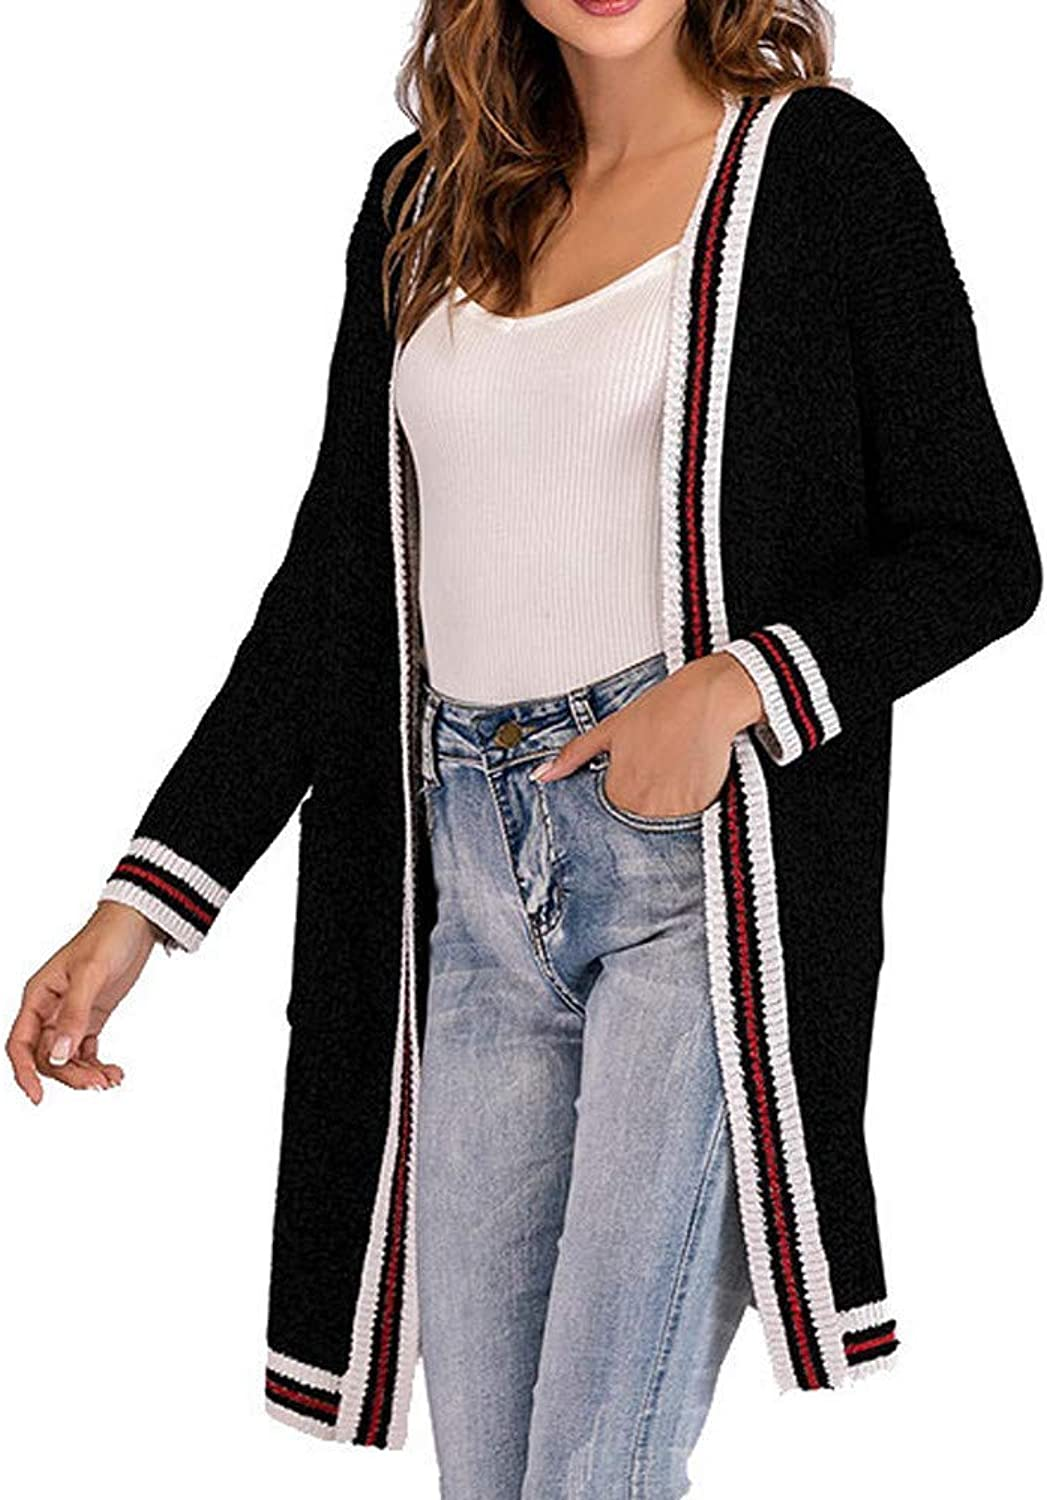 Women's Warm Loose Cotton Over Knee Knitted Sexy Hooded Sweater Coat Long Sleeve Stripe Cardigan Elegant Elastic Tunic Tops